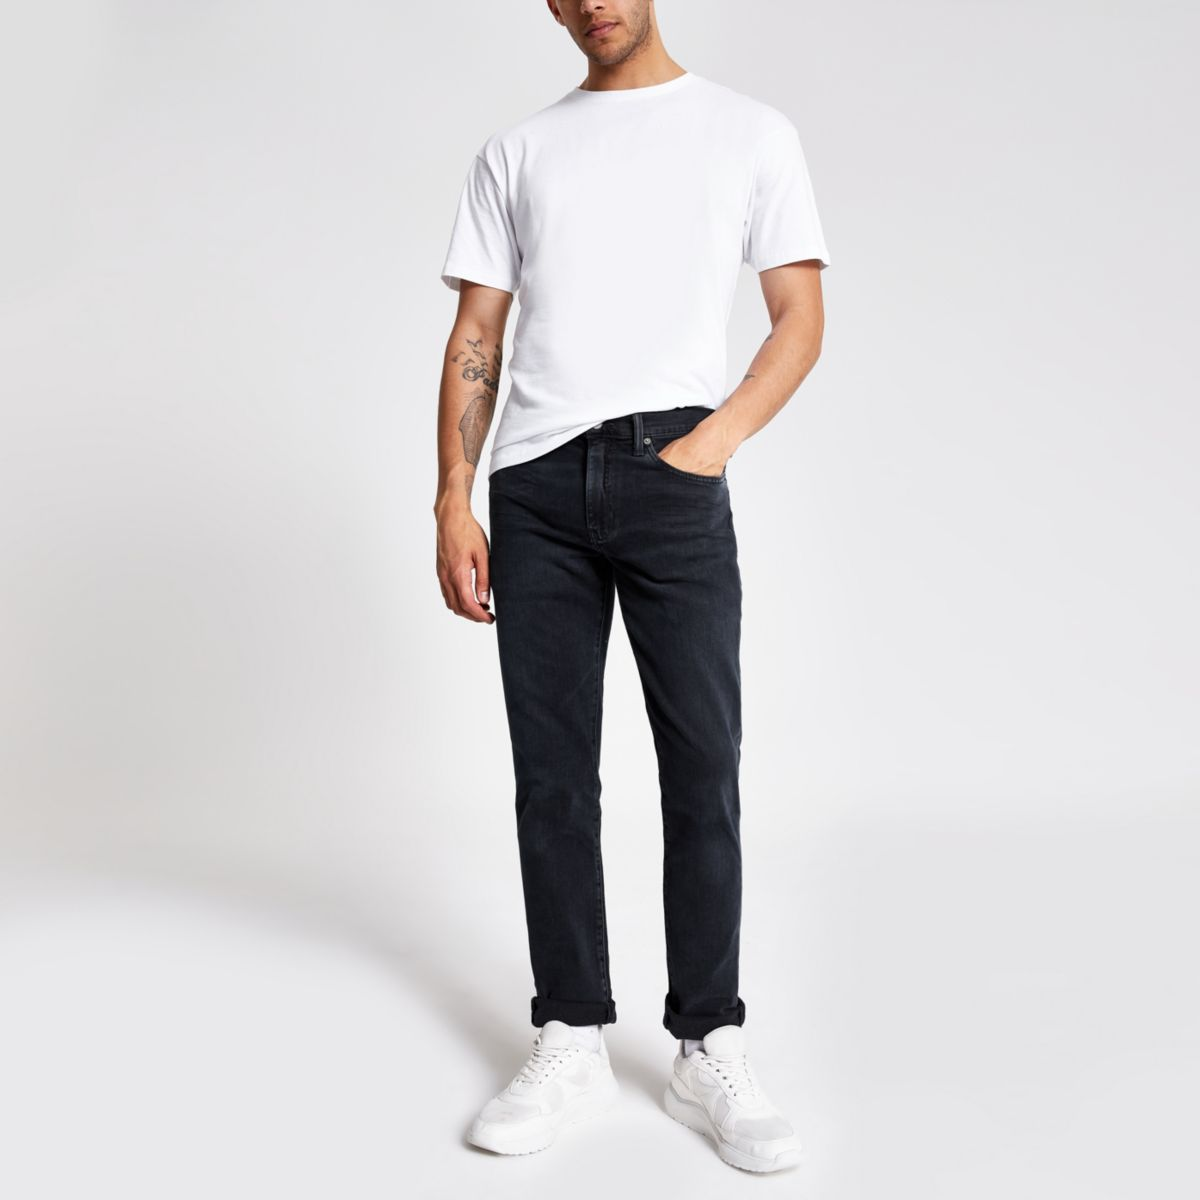 Levi's black 511 slim fit jeans